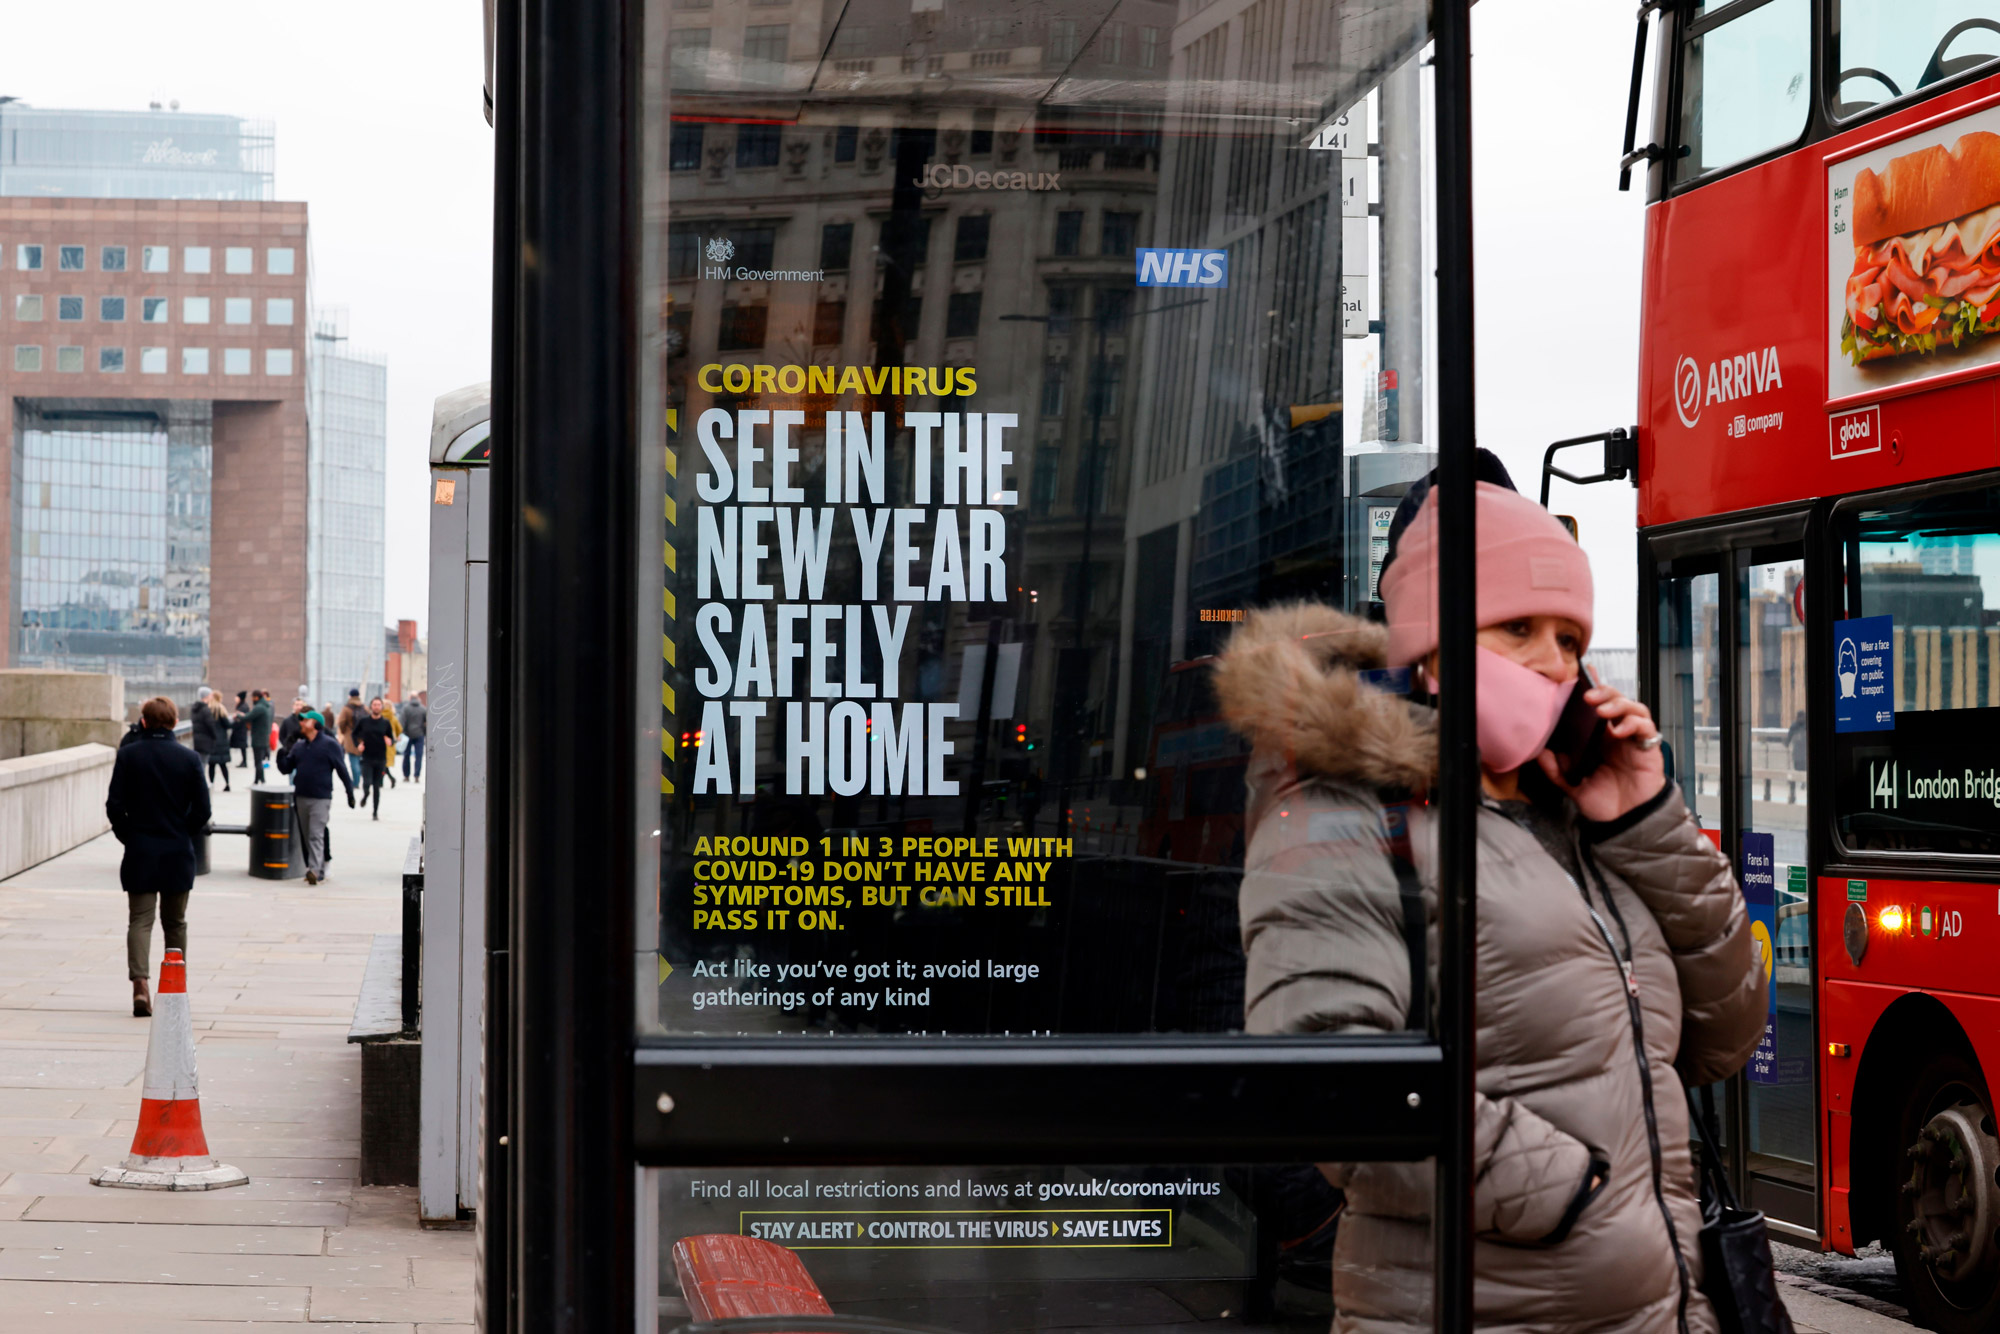 A government message about the coronavirus tier 4 restrictions is seen urging people to stay home in London on December 29.